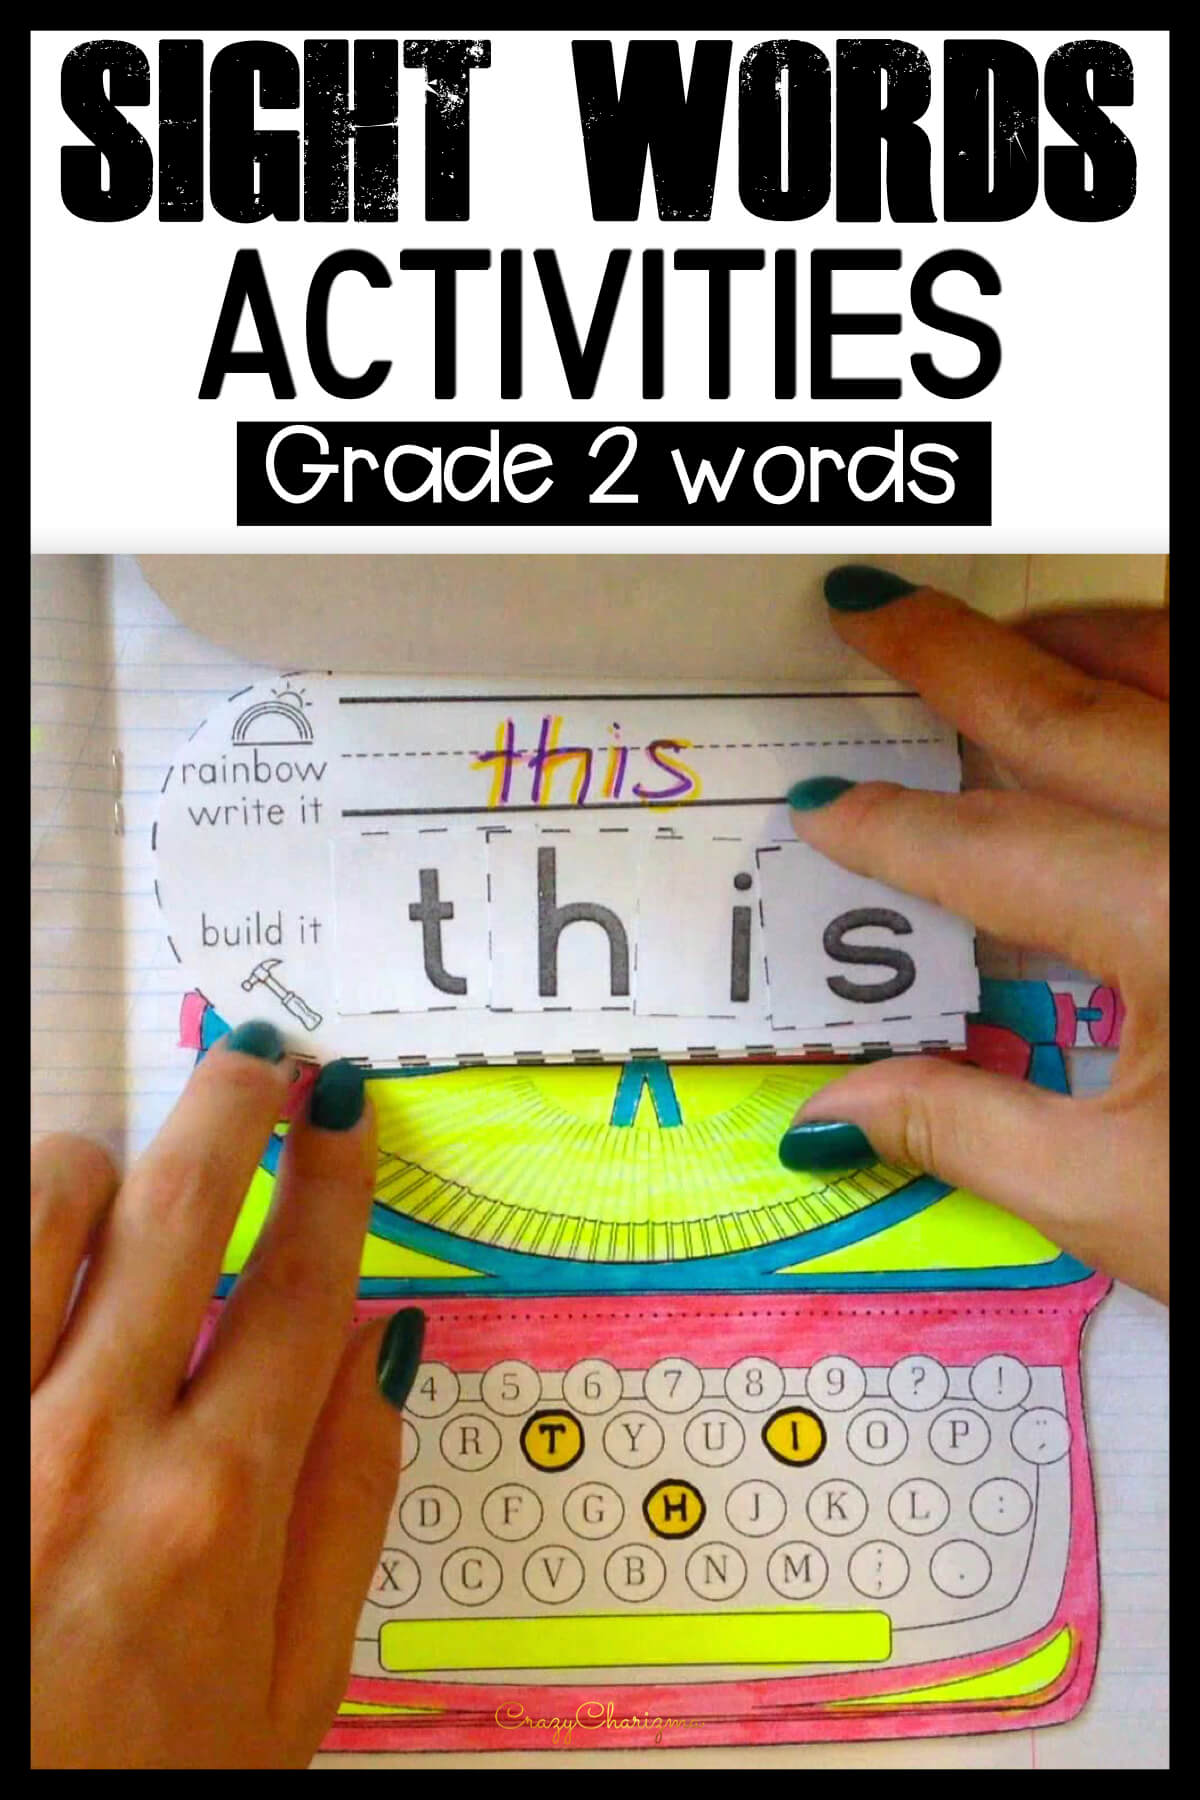 Dolch Sight Words Grade 2